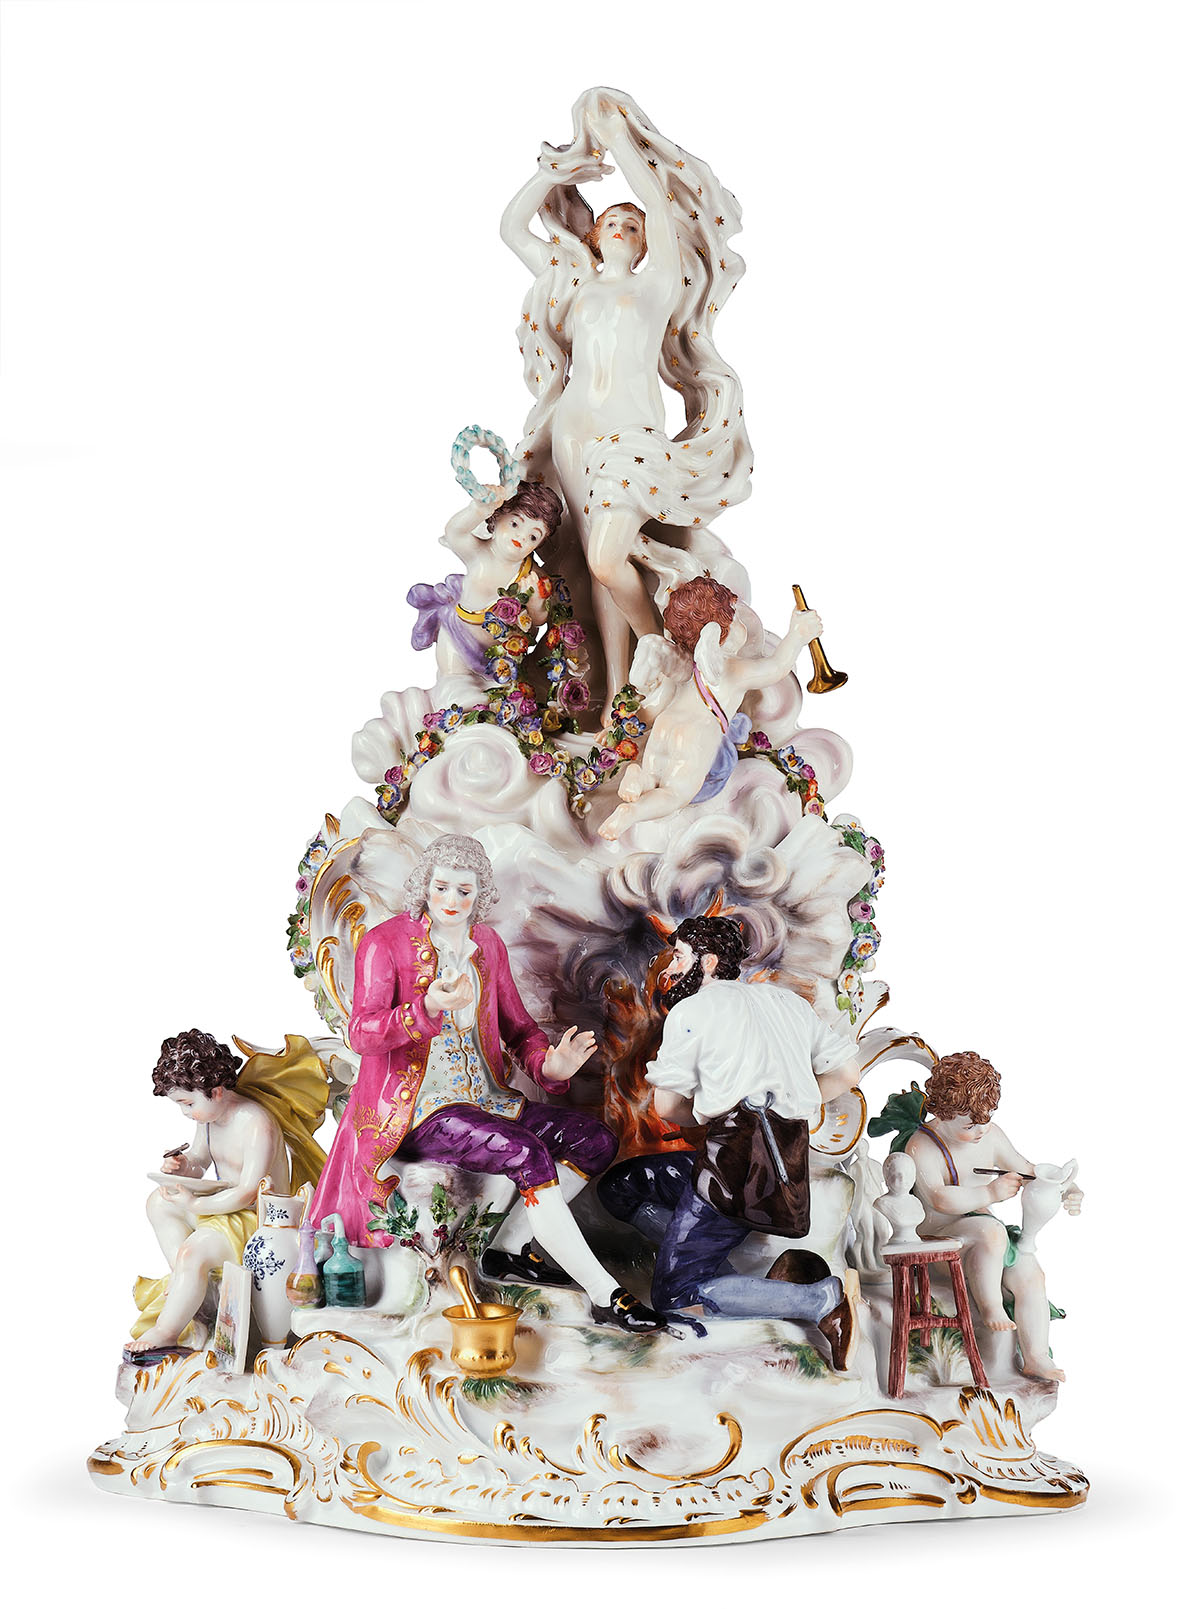 """The Making of Porcelain"" - A Very Rare and Historically Important Group of Figures, 2 parts, Meissen, c. 1890, model by Paul Helmig, €36,000 - 50,000"